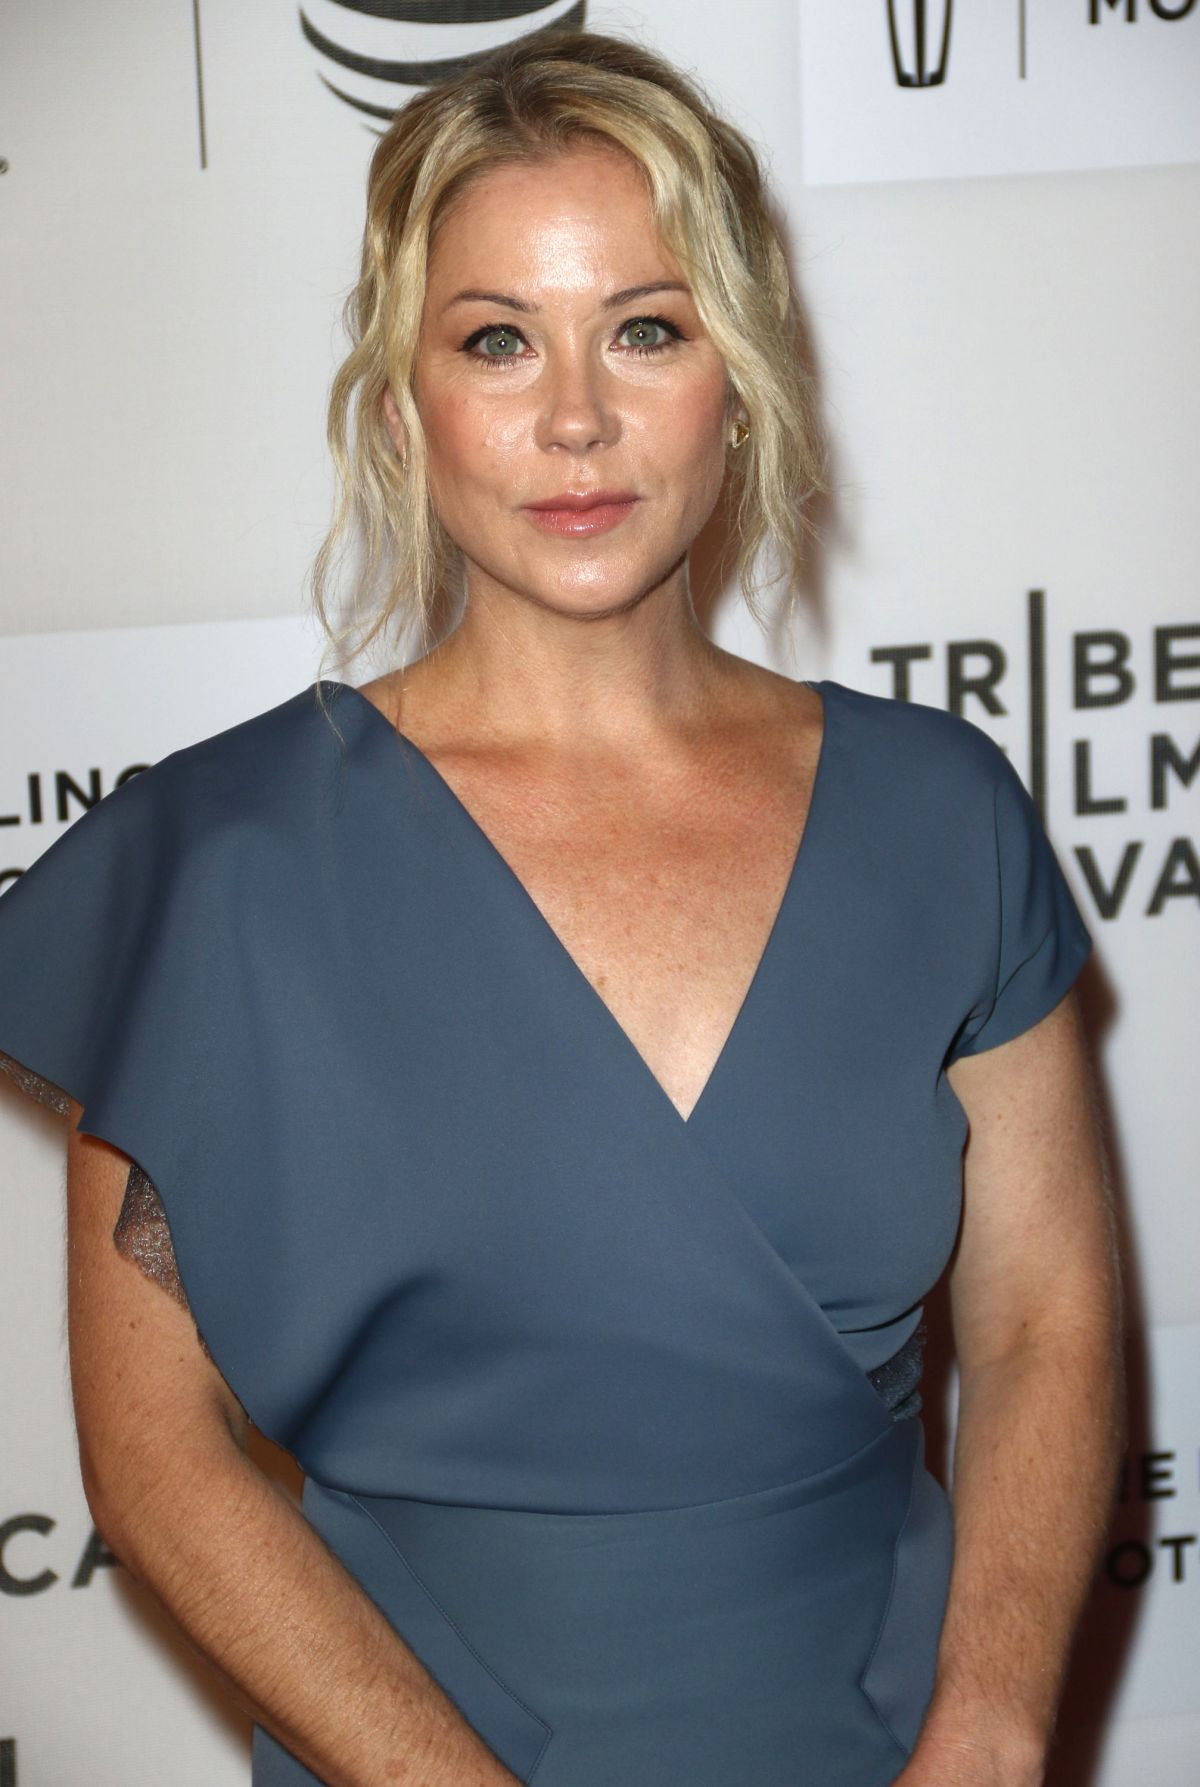 Christina Applegate At 'Youth In Oregon' Premiere In NYC ... Christina Applegate